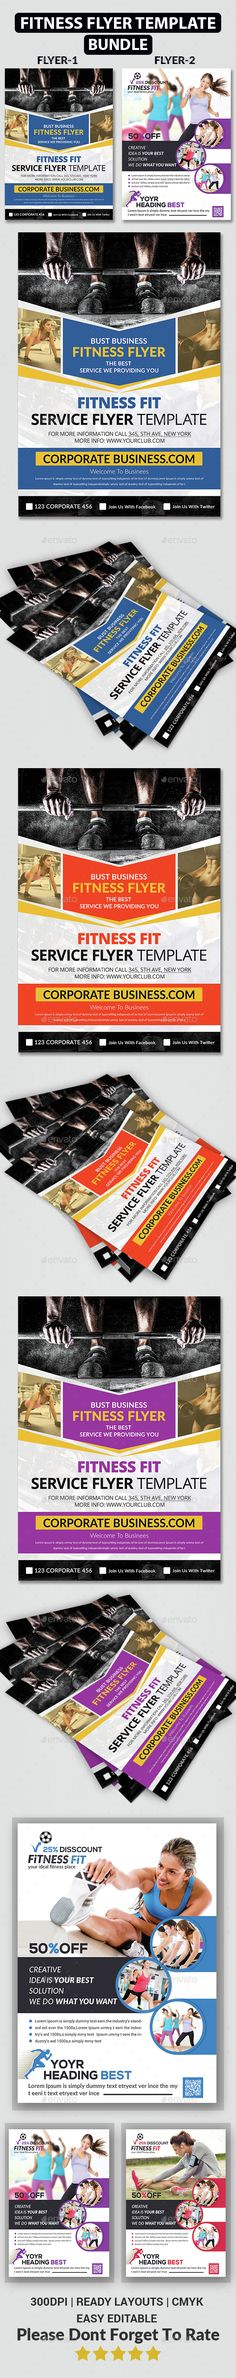 Fitness Flyers Bundle by afjamaal Fitness Flyers Bundle .This flyer is made in photoshop the files included are help file and photoshop psds. All psds are very well